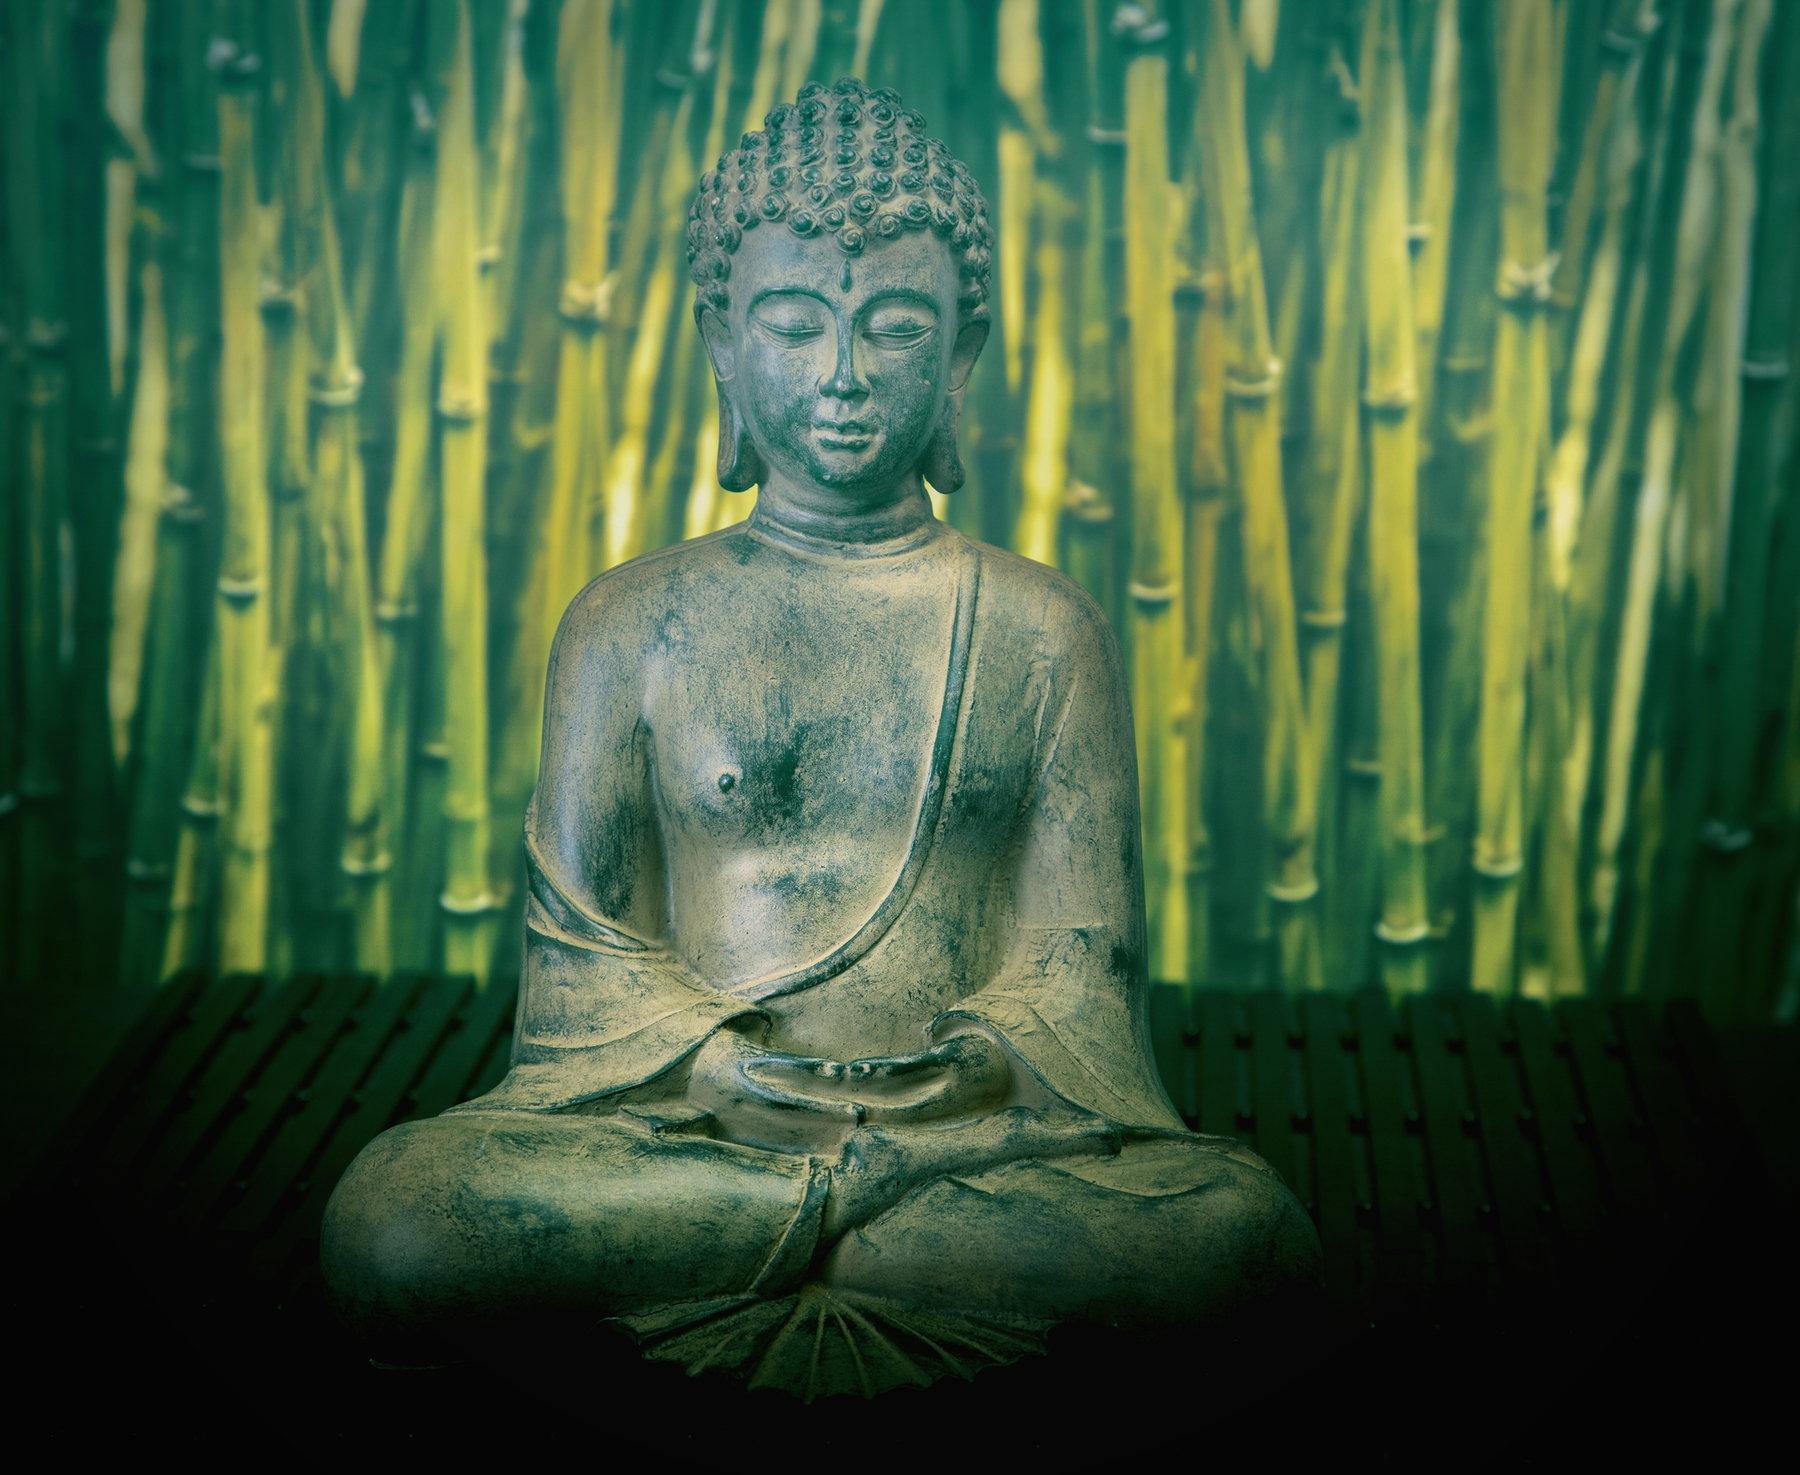 Buddha Green Bamboo Wall Mural/Wallpaper Nature